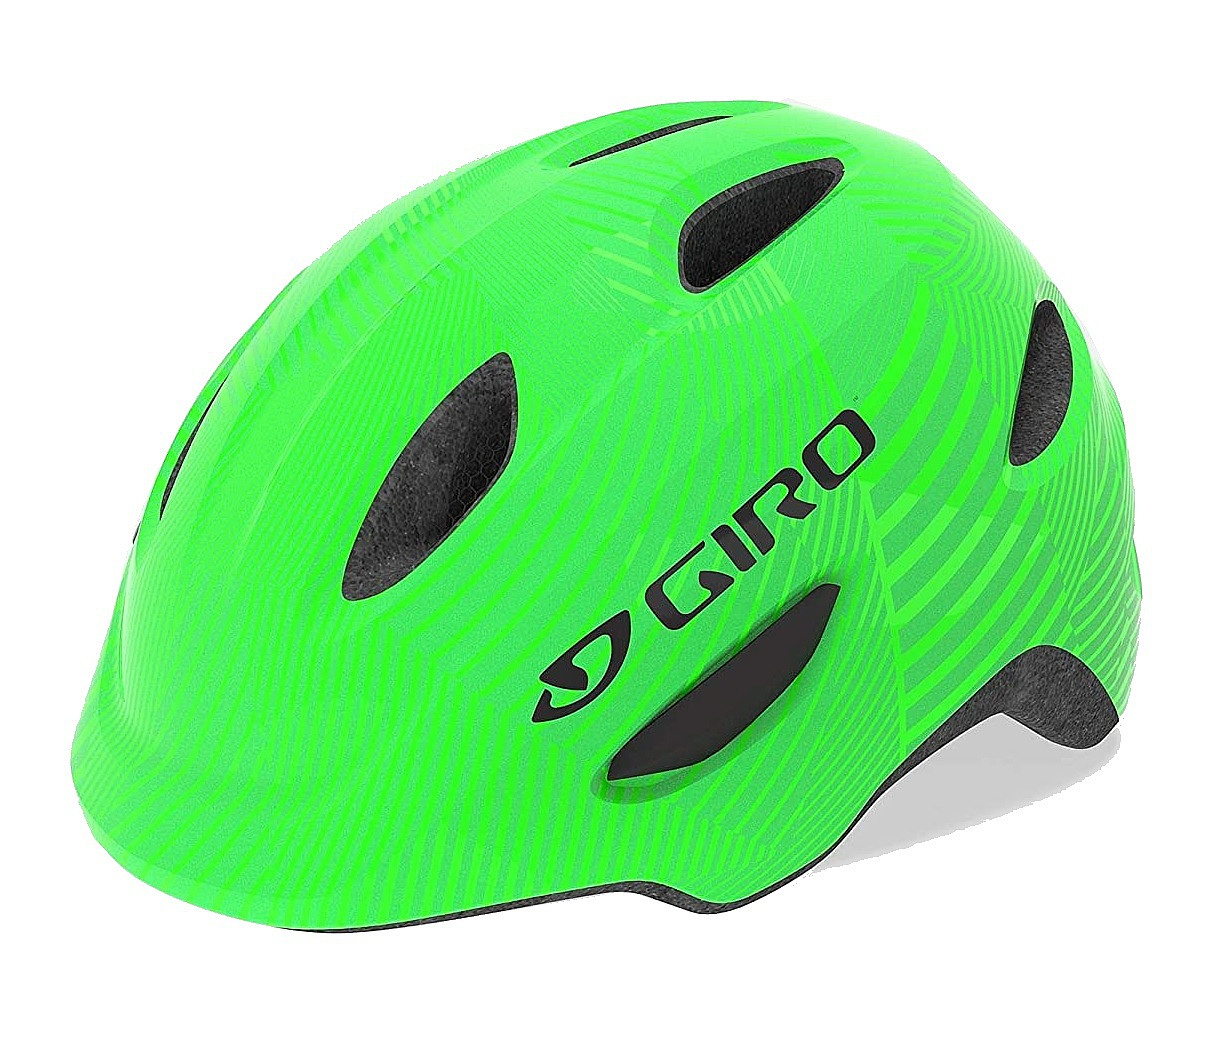 helma Giro Scamp - Green/Lime Lines 49-53 cm